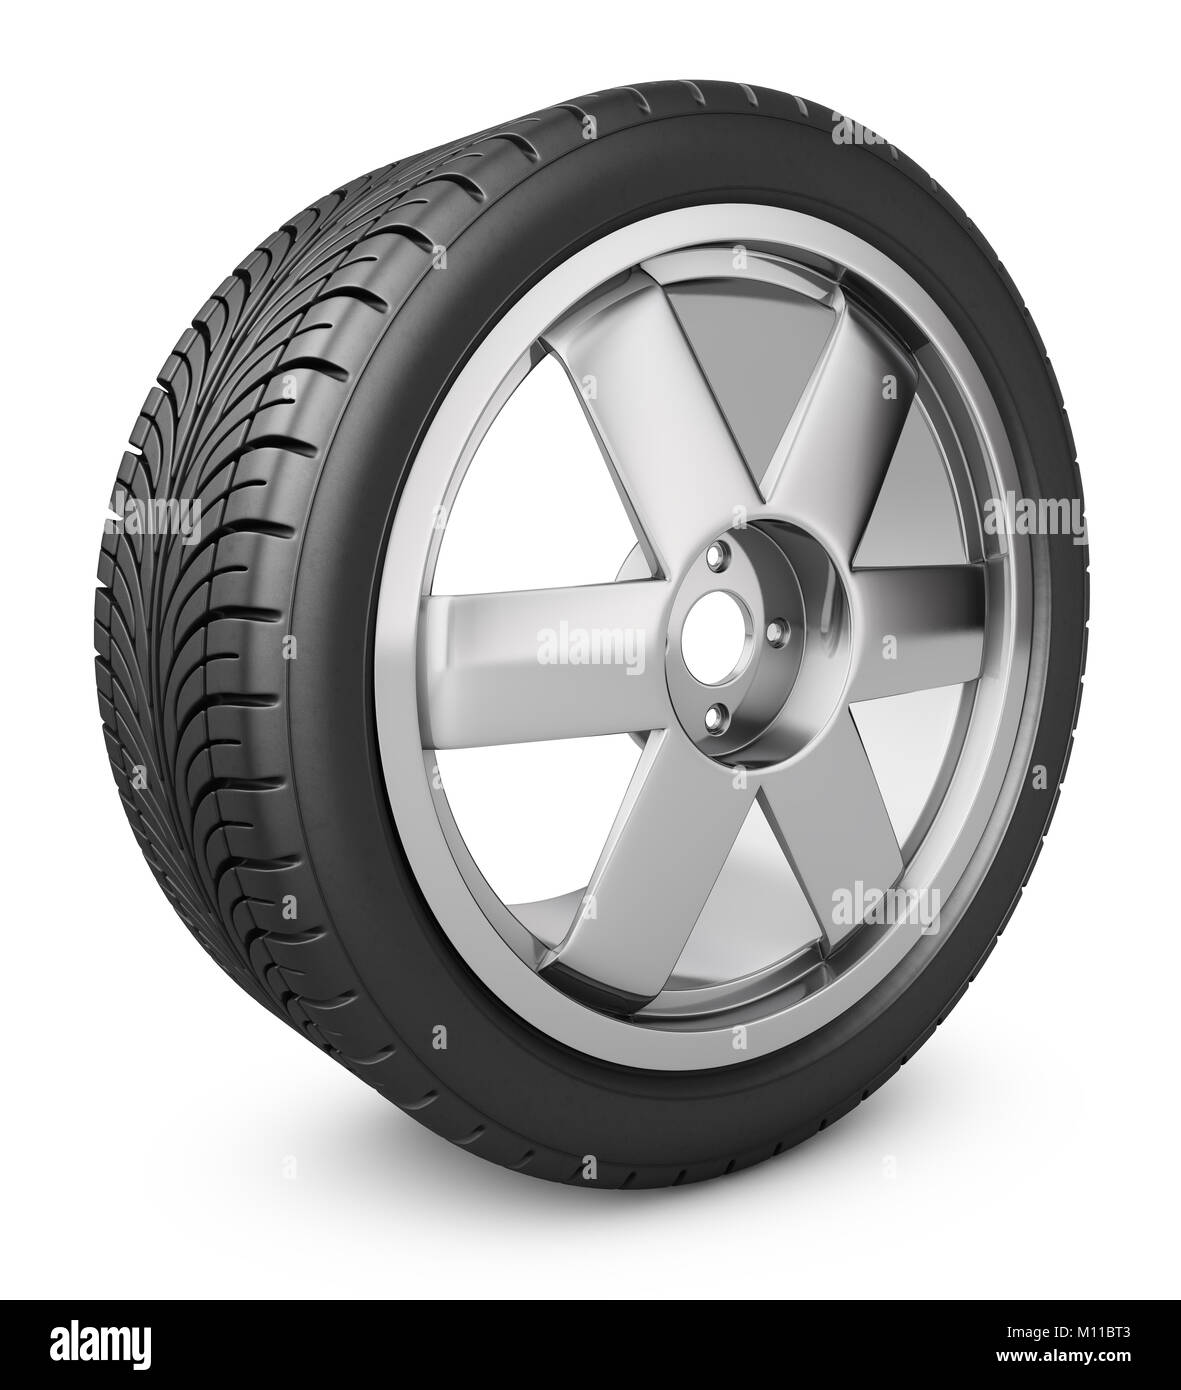 Modern wheel on a white background. 3d rendering. - Stock Image